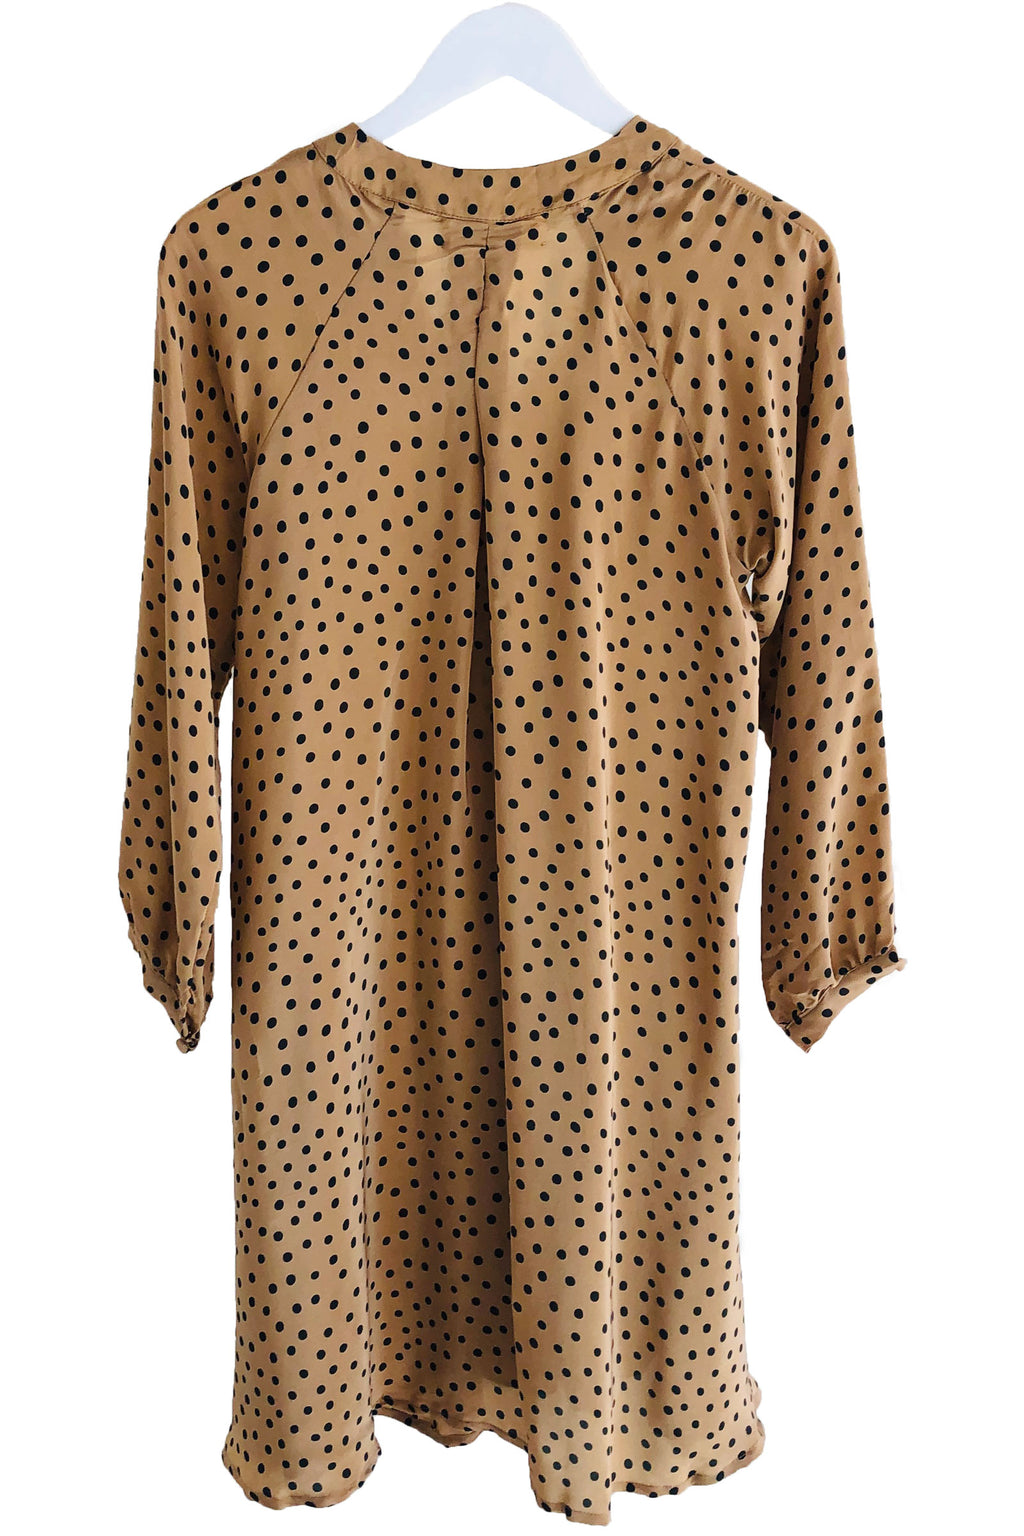 Natalie Martin Fiore Short Dress in Polka Dot Tan